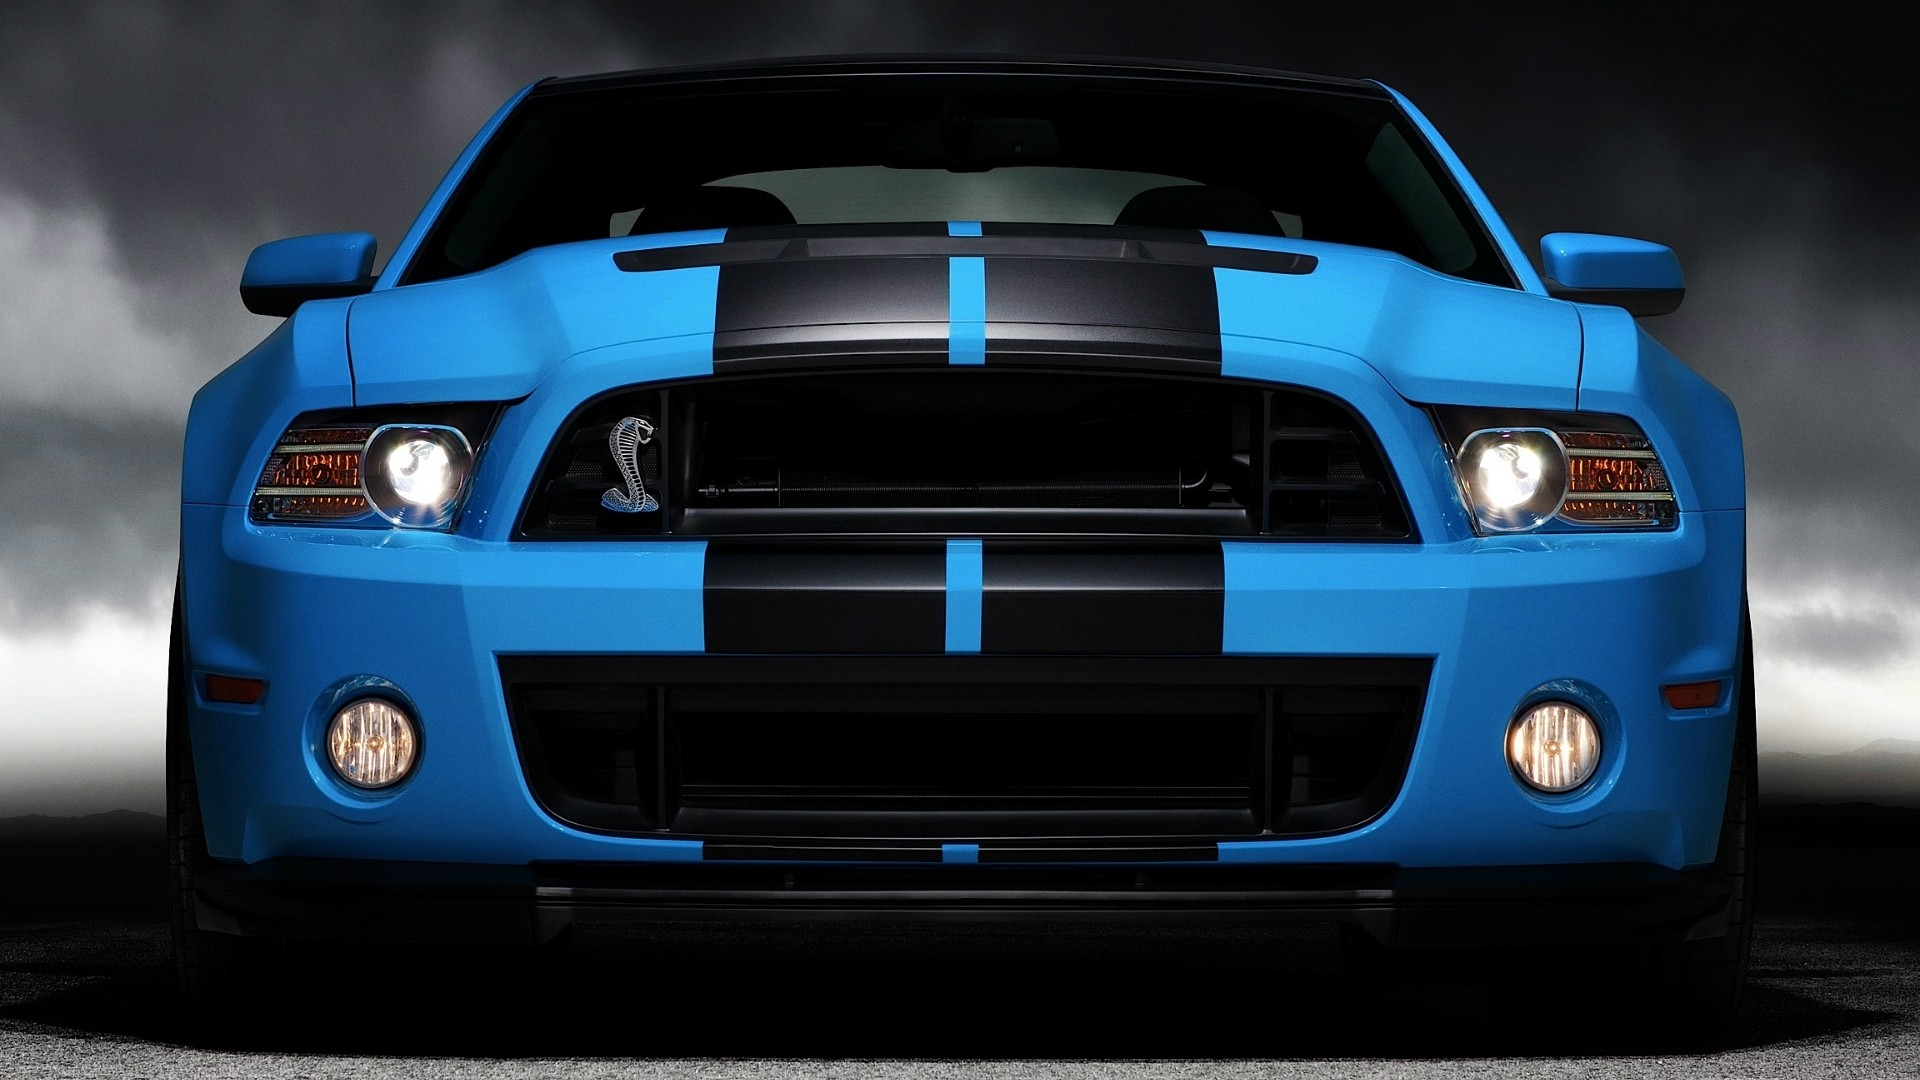 Car wallpapers mustang hd - Cars hd wallpapers for laptop ...